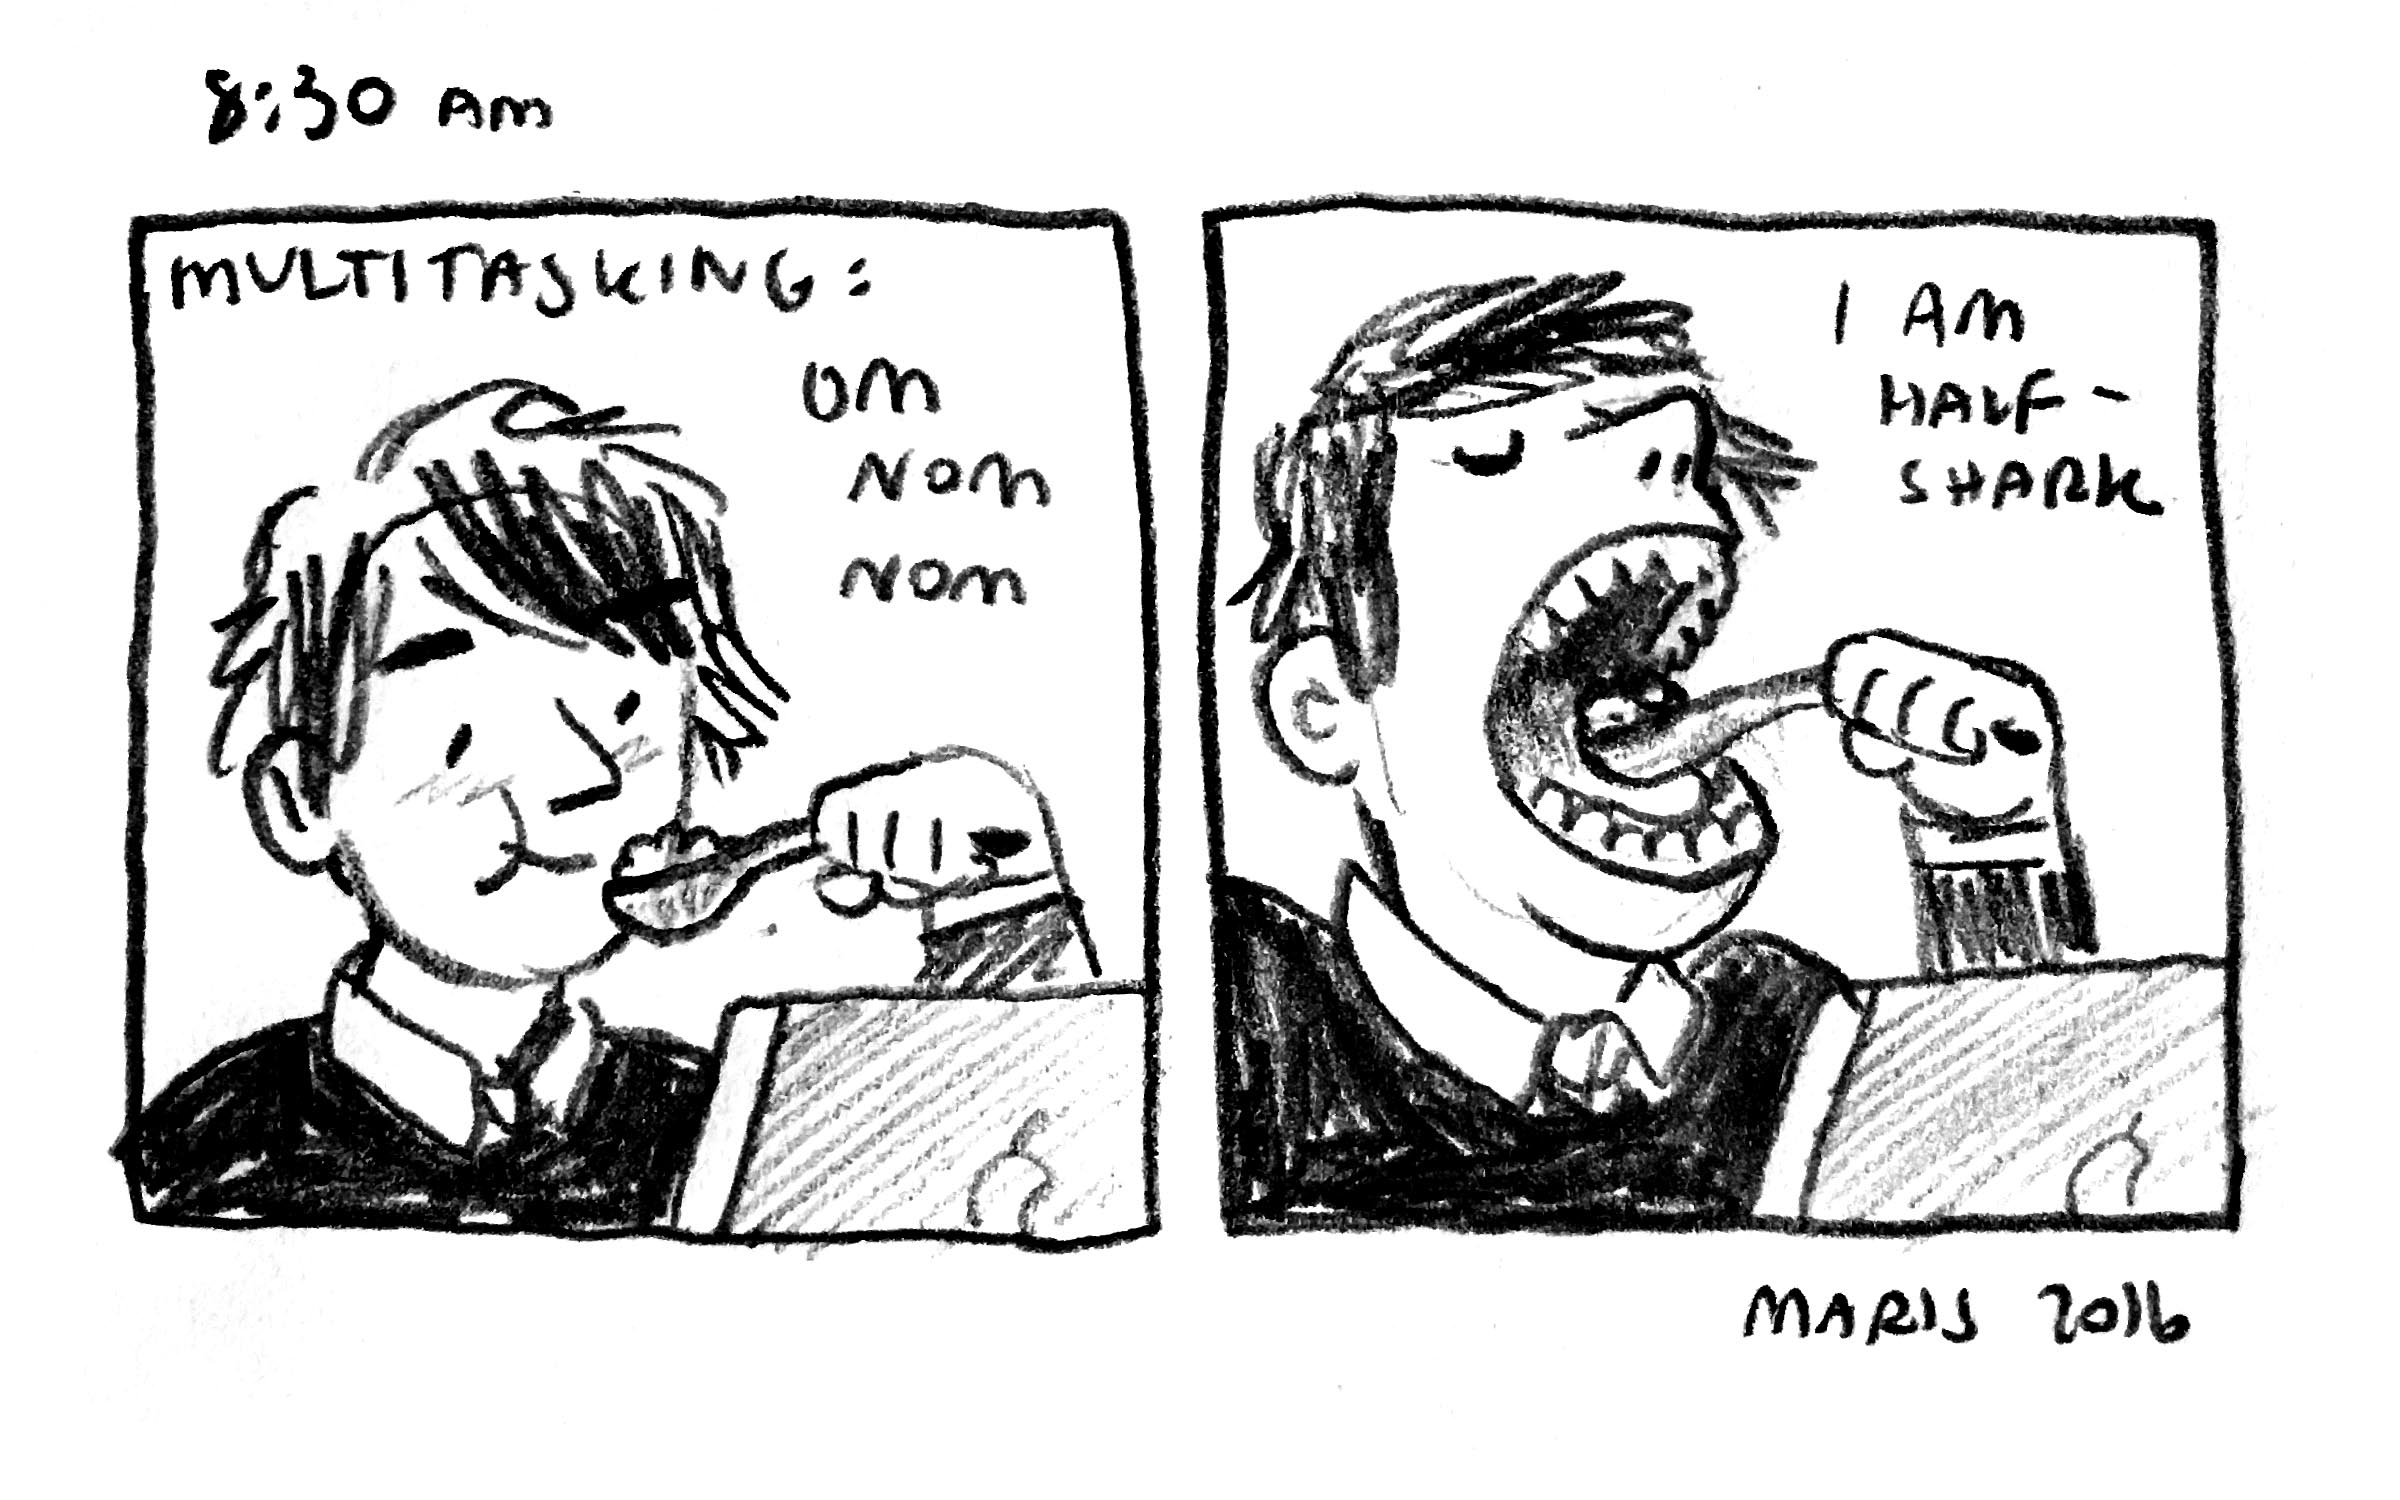 04_mw_2016_hourlies.jpg